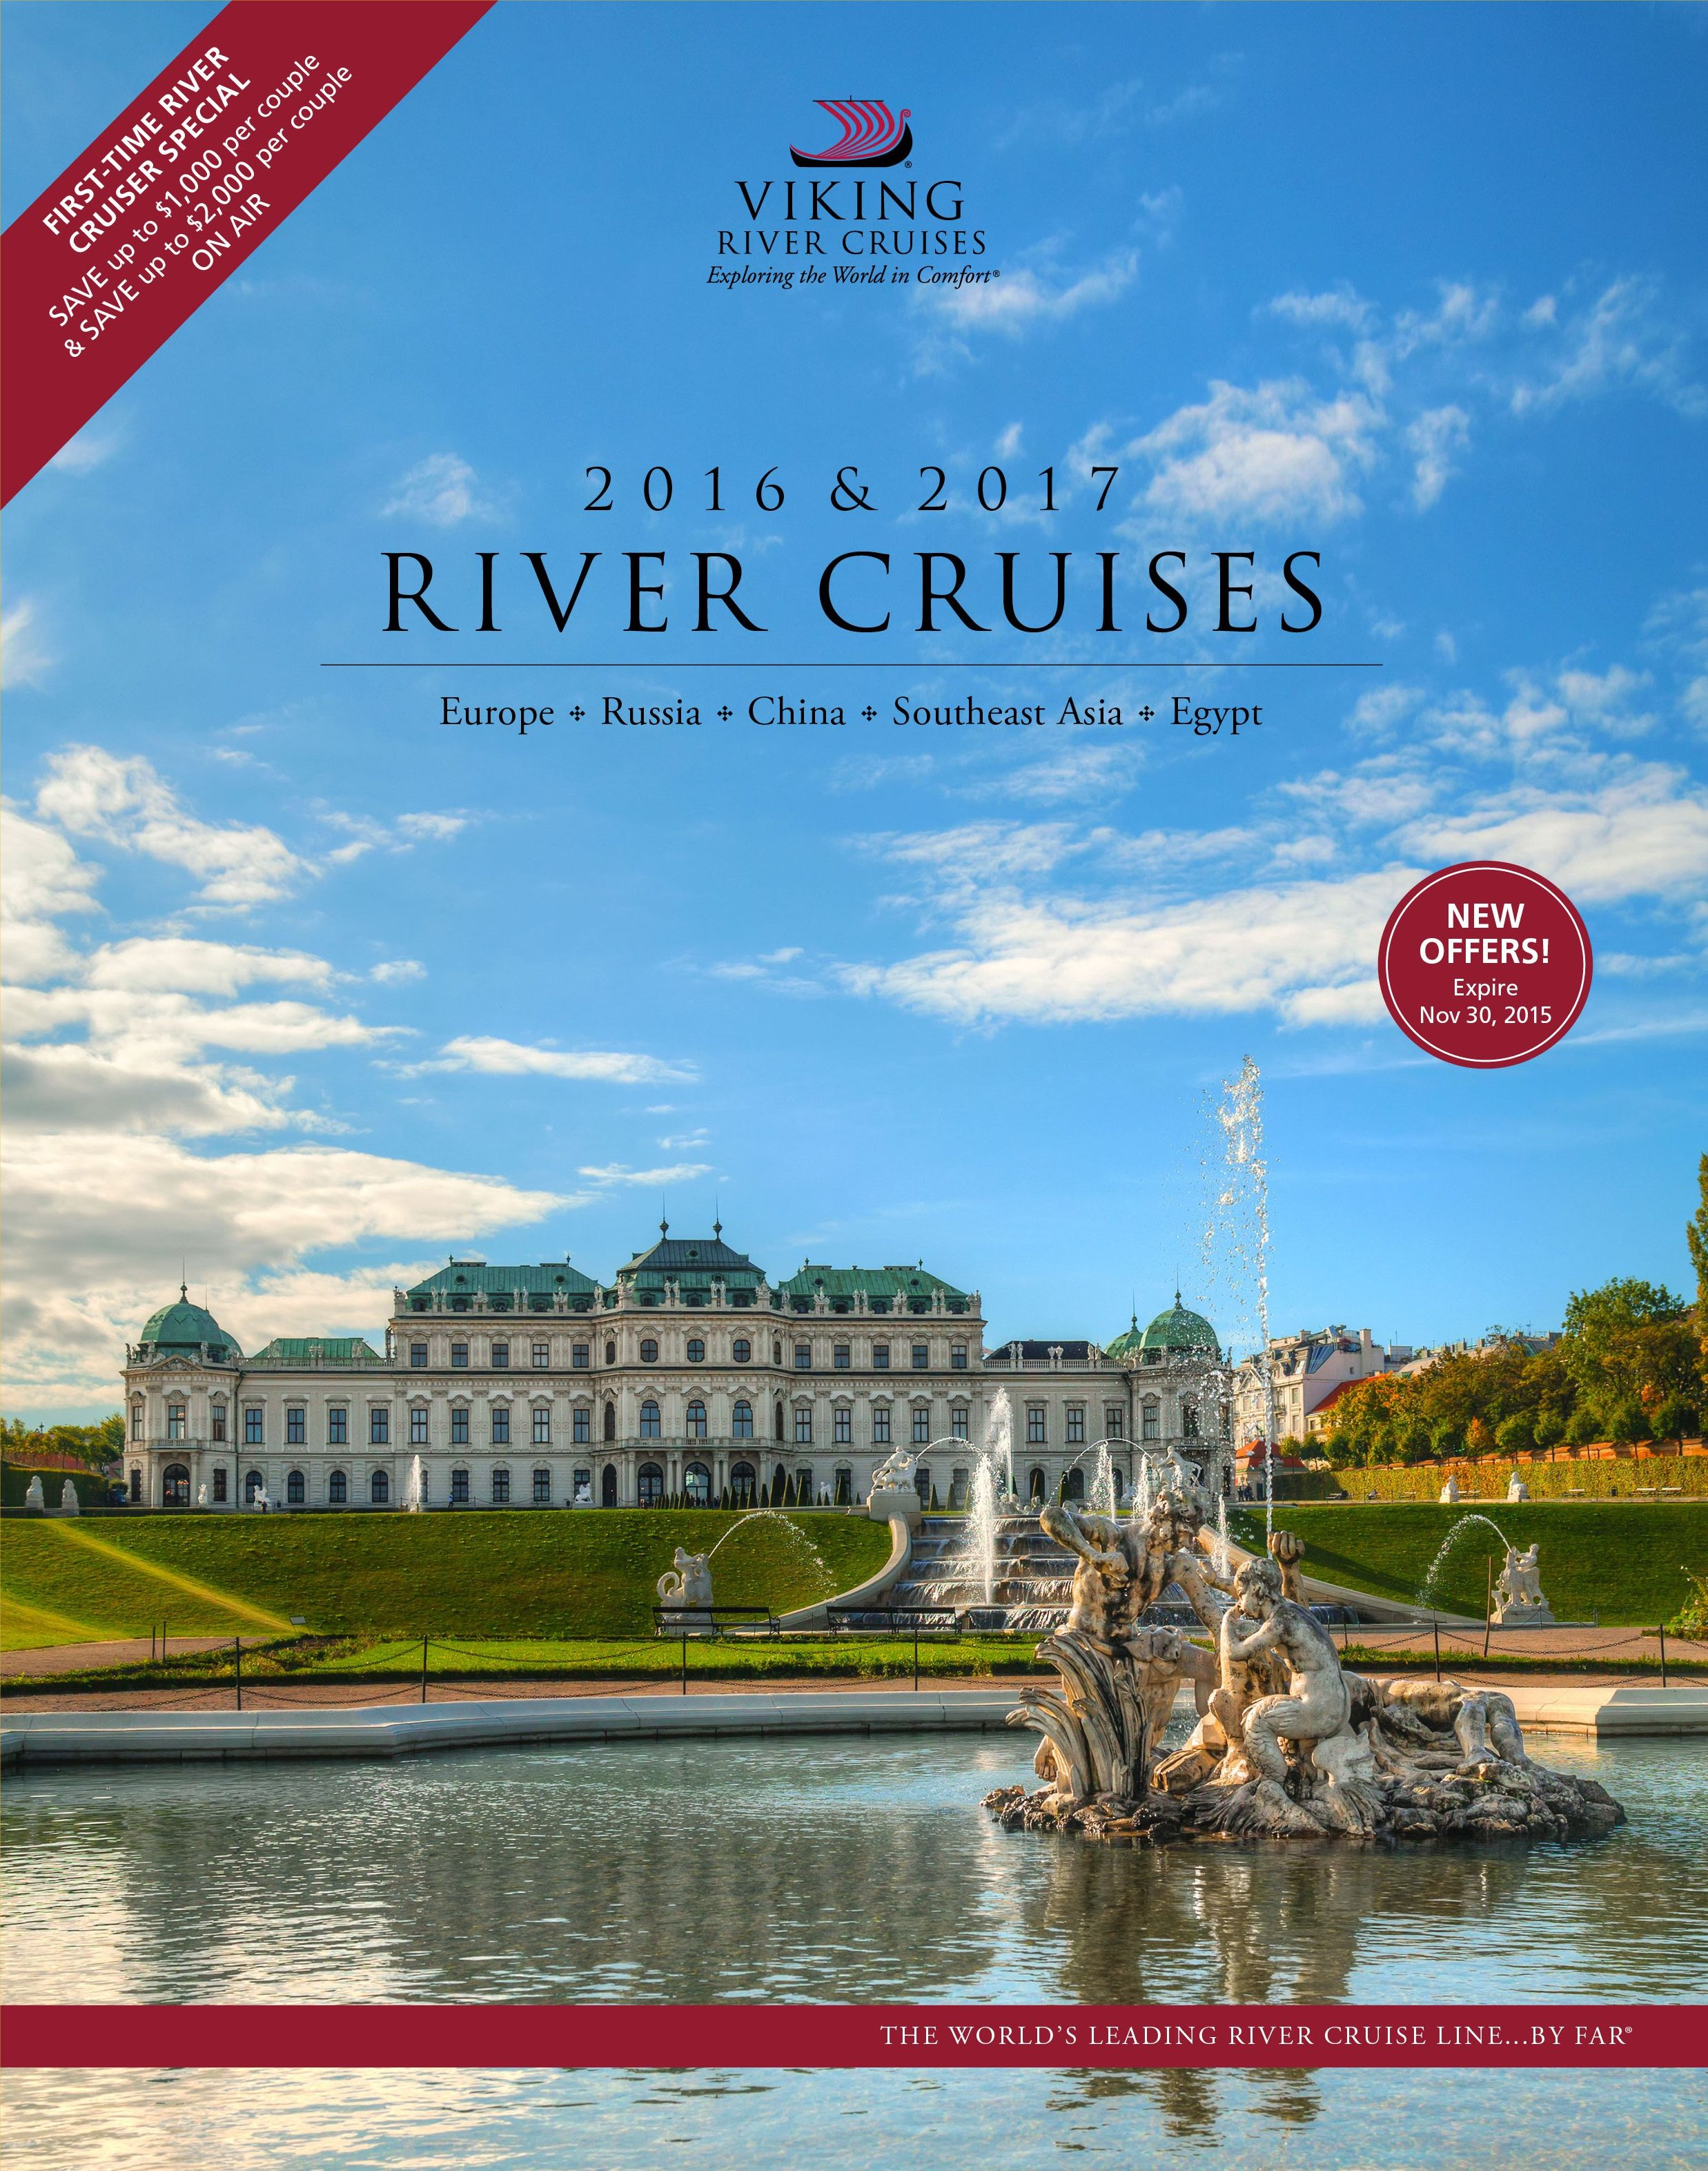 Viking River Cruises 2016/2017 eBrochure